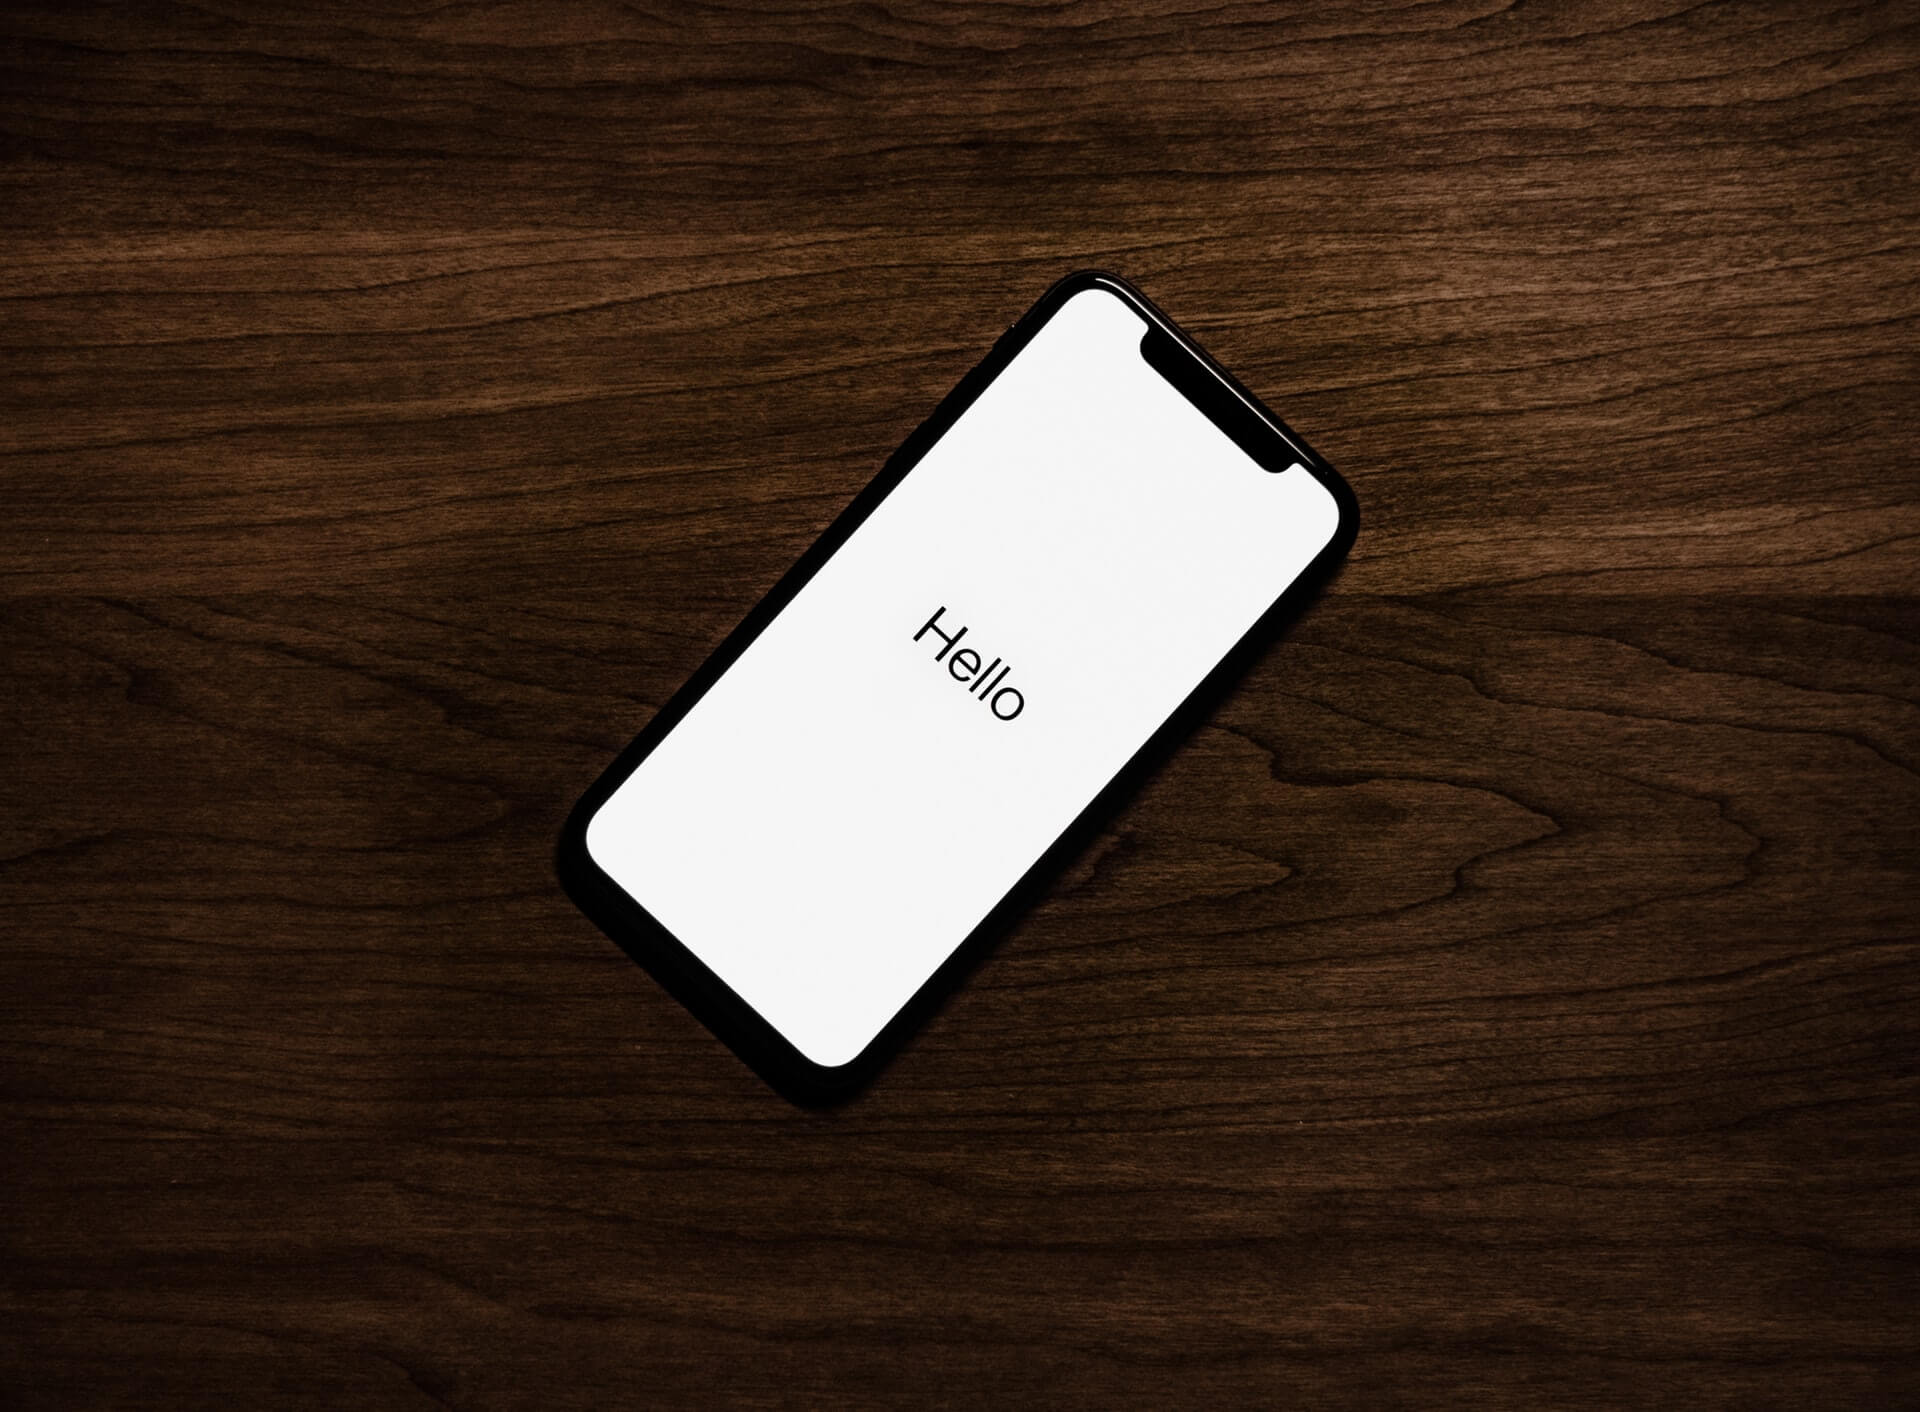 Mobile device with the words Hello on display